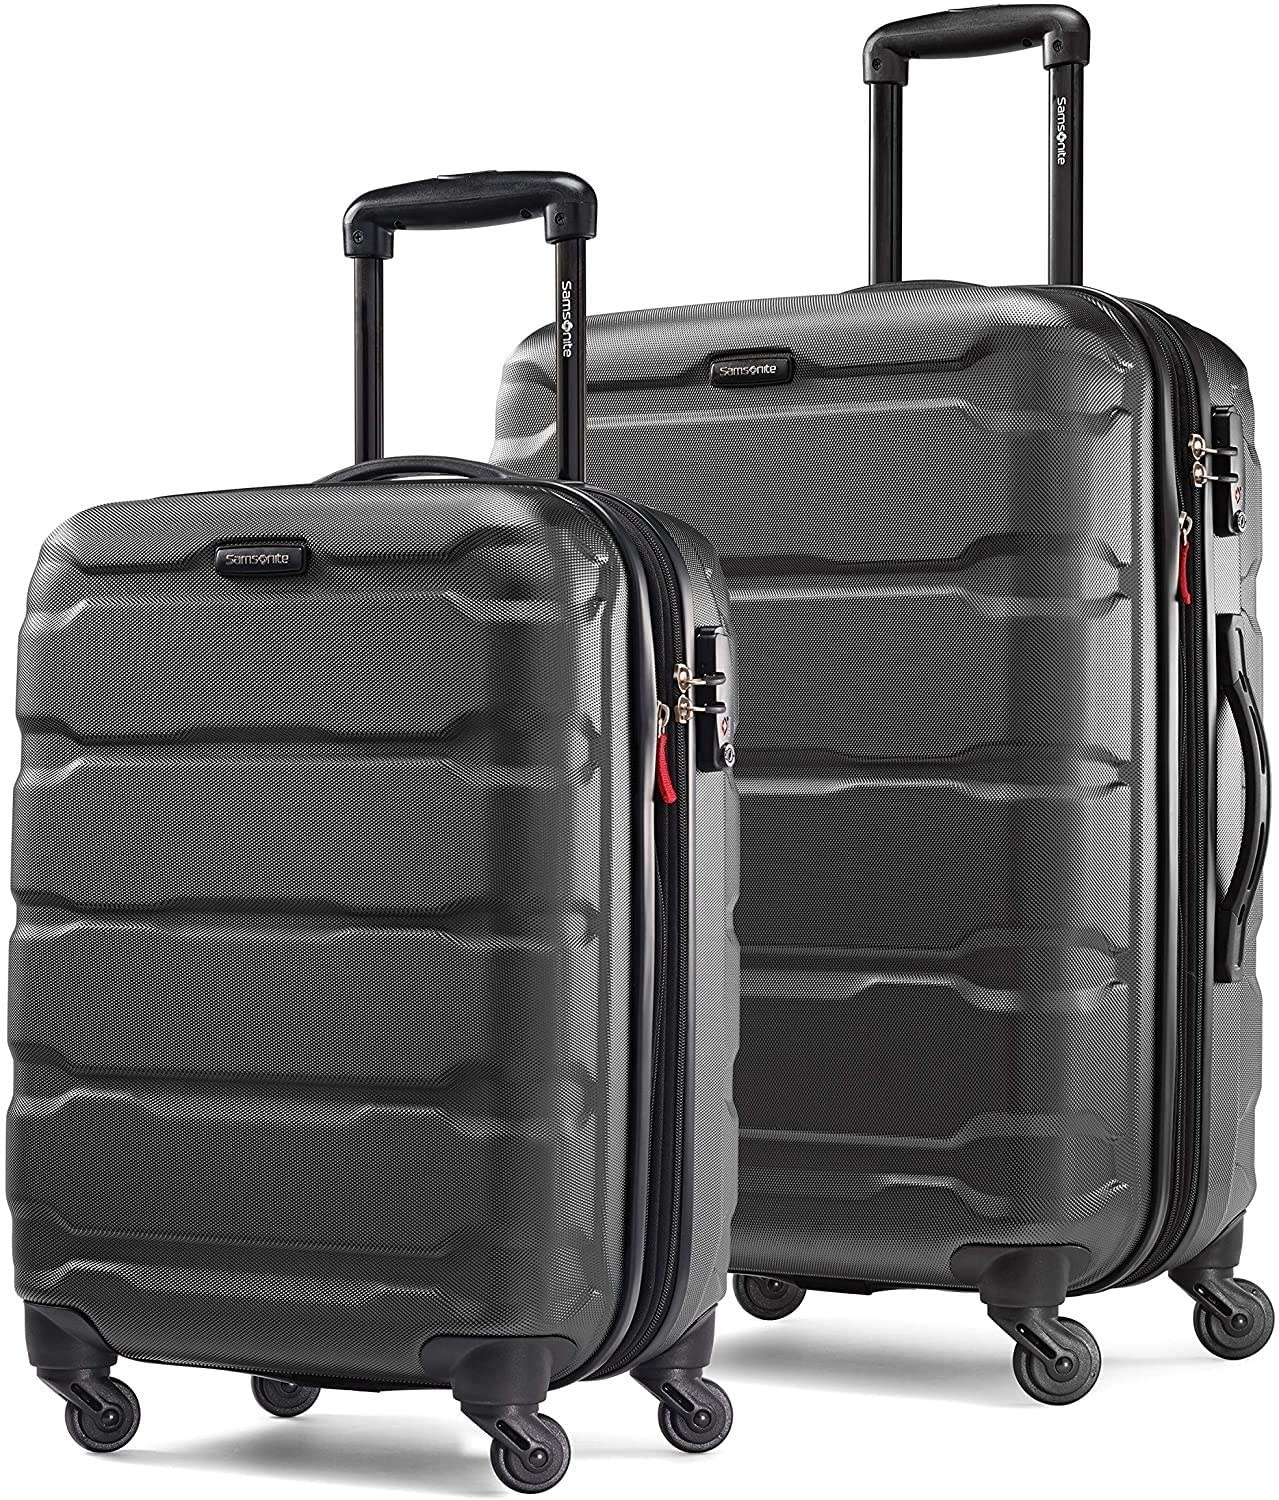 The two suitcases with spinner wheels, one carry-on size and one larger one